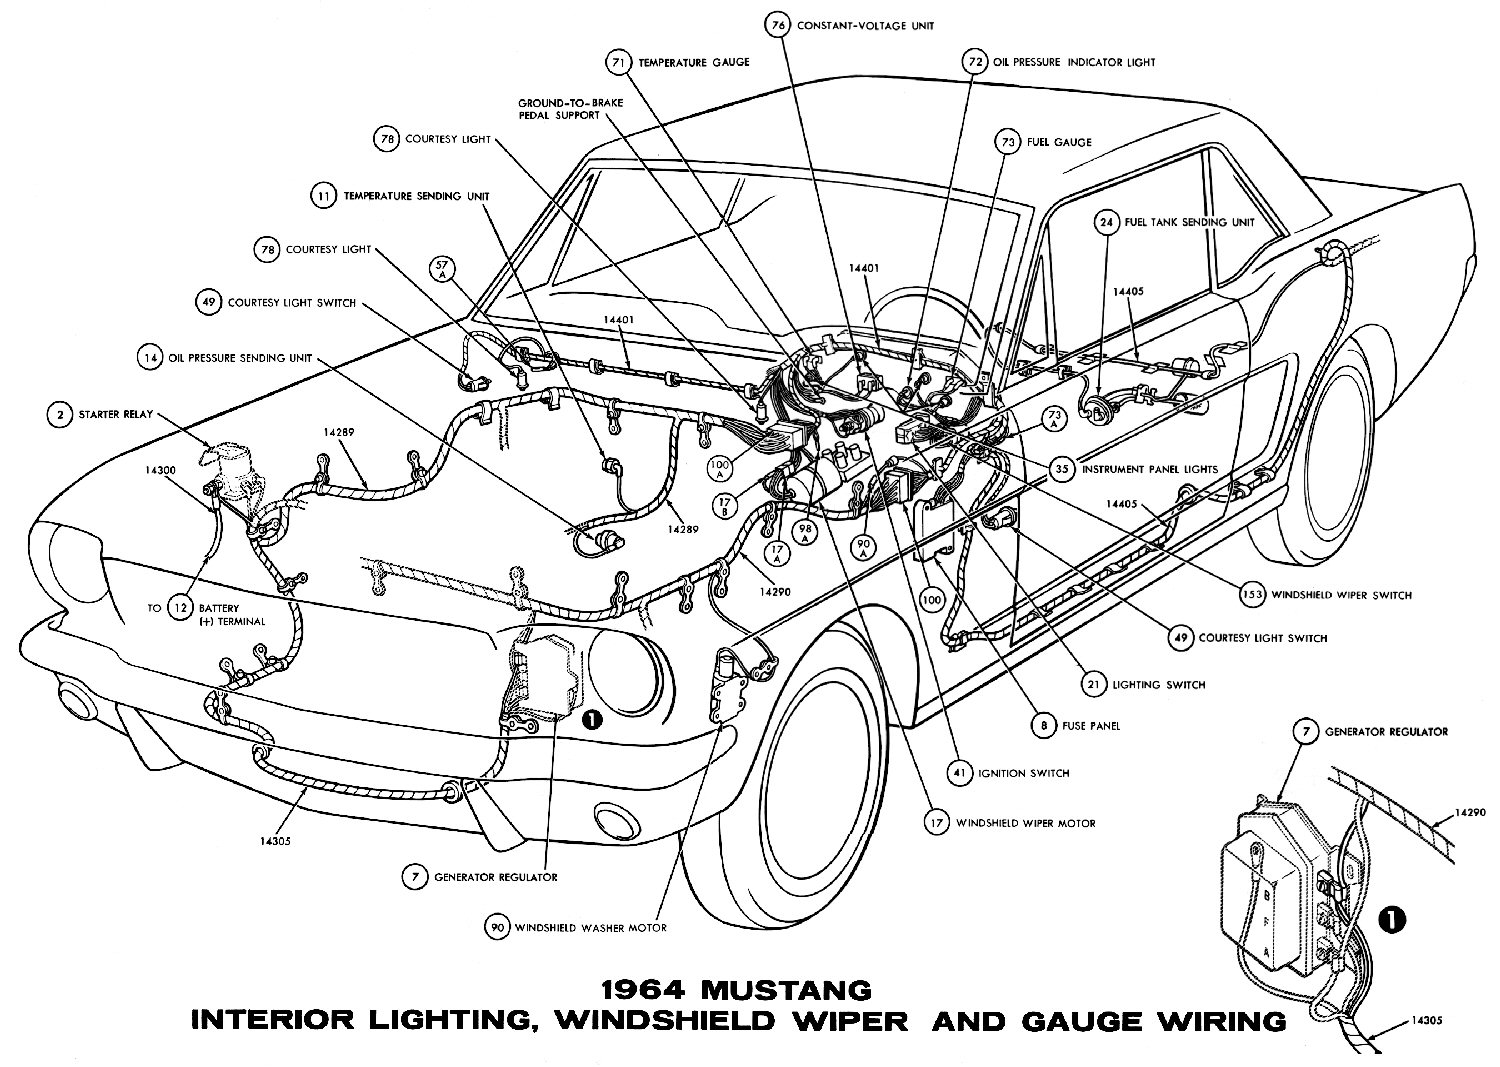 car wheel parts diagram turn signal wiring drawing at getdrawings free for personal